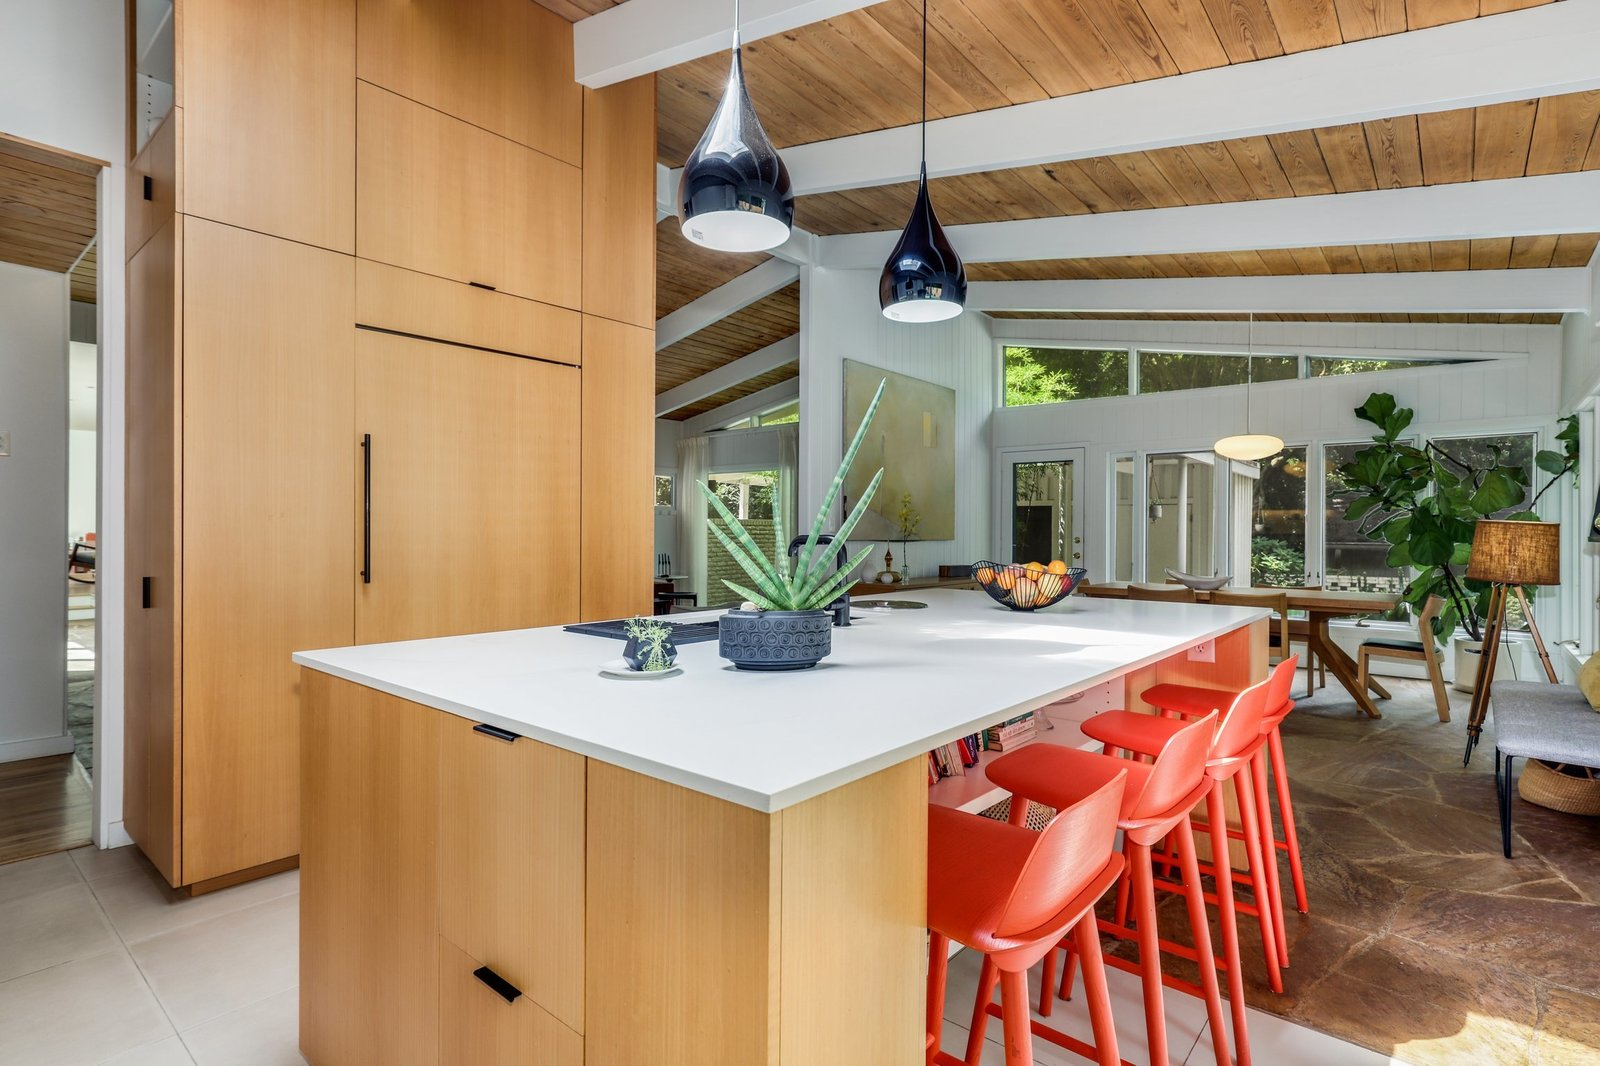 The space also features a large central island that's topped with quartz counters and illuminated by an overhead skylight.